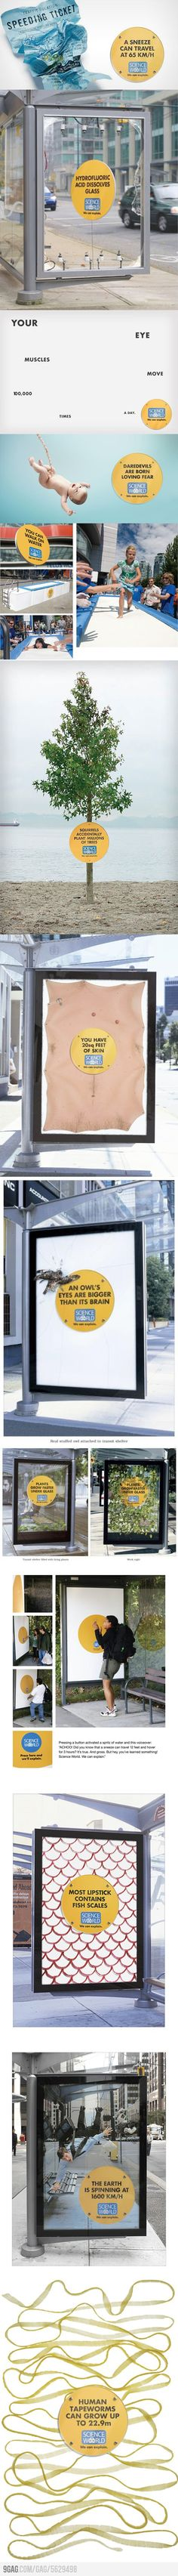 """Clever Ads from """"Science World"""" Part 2"""